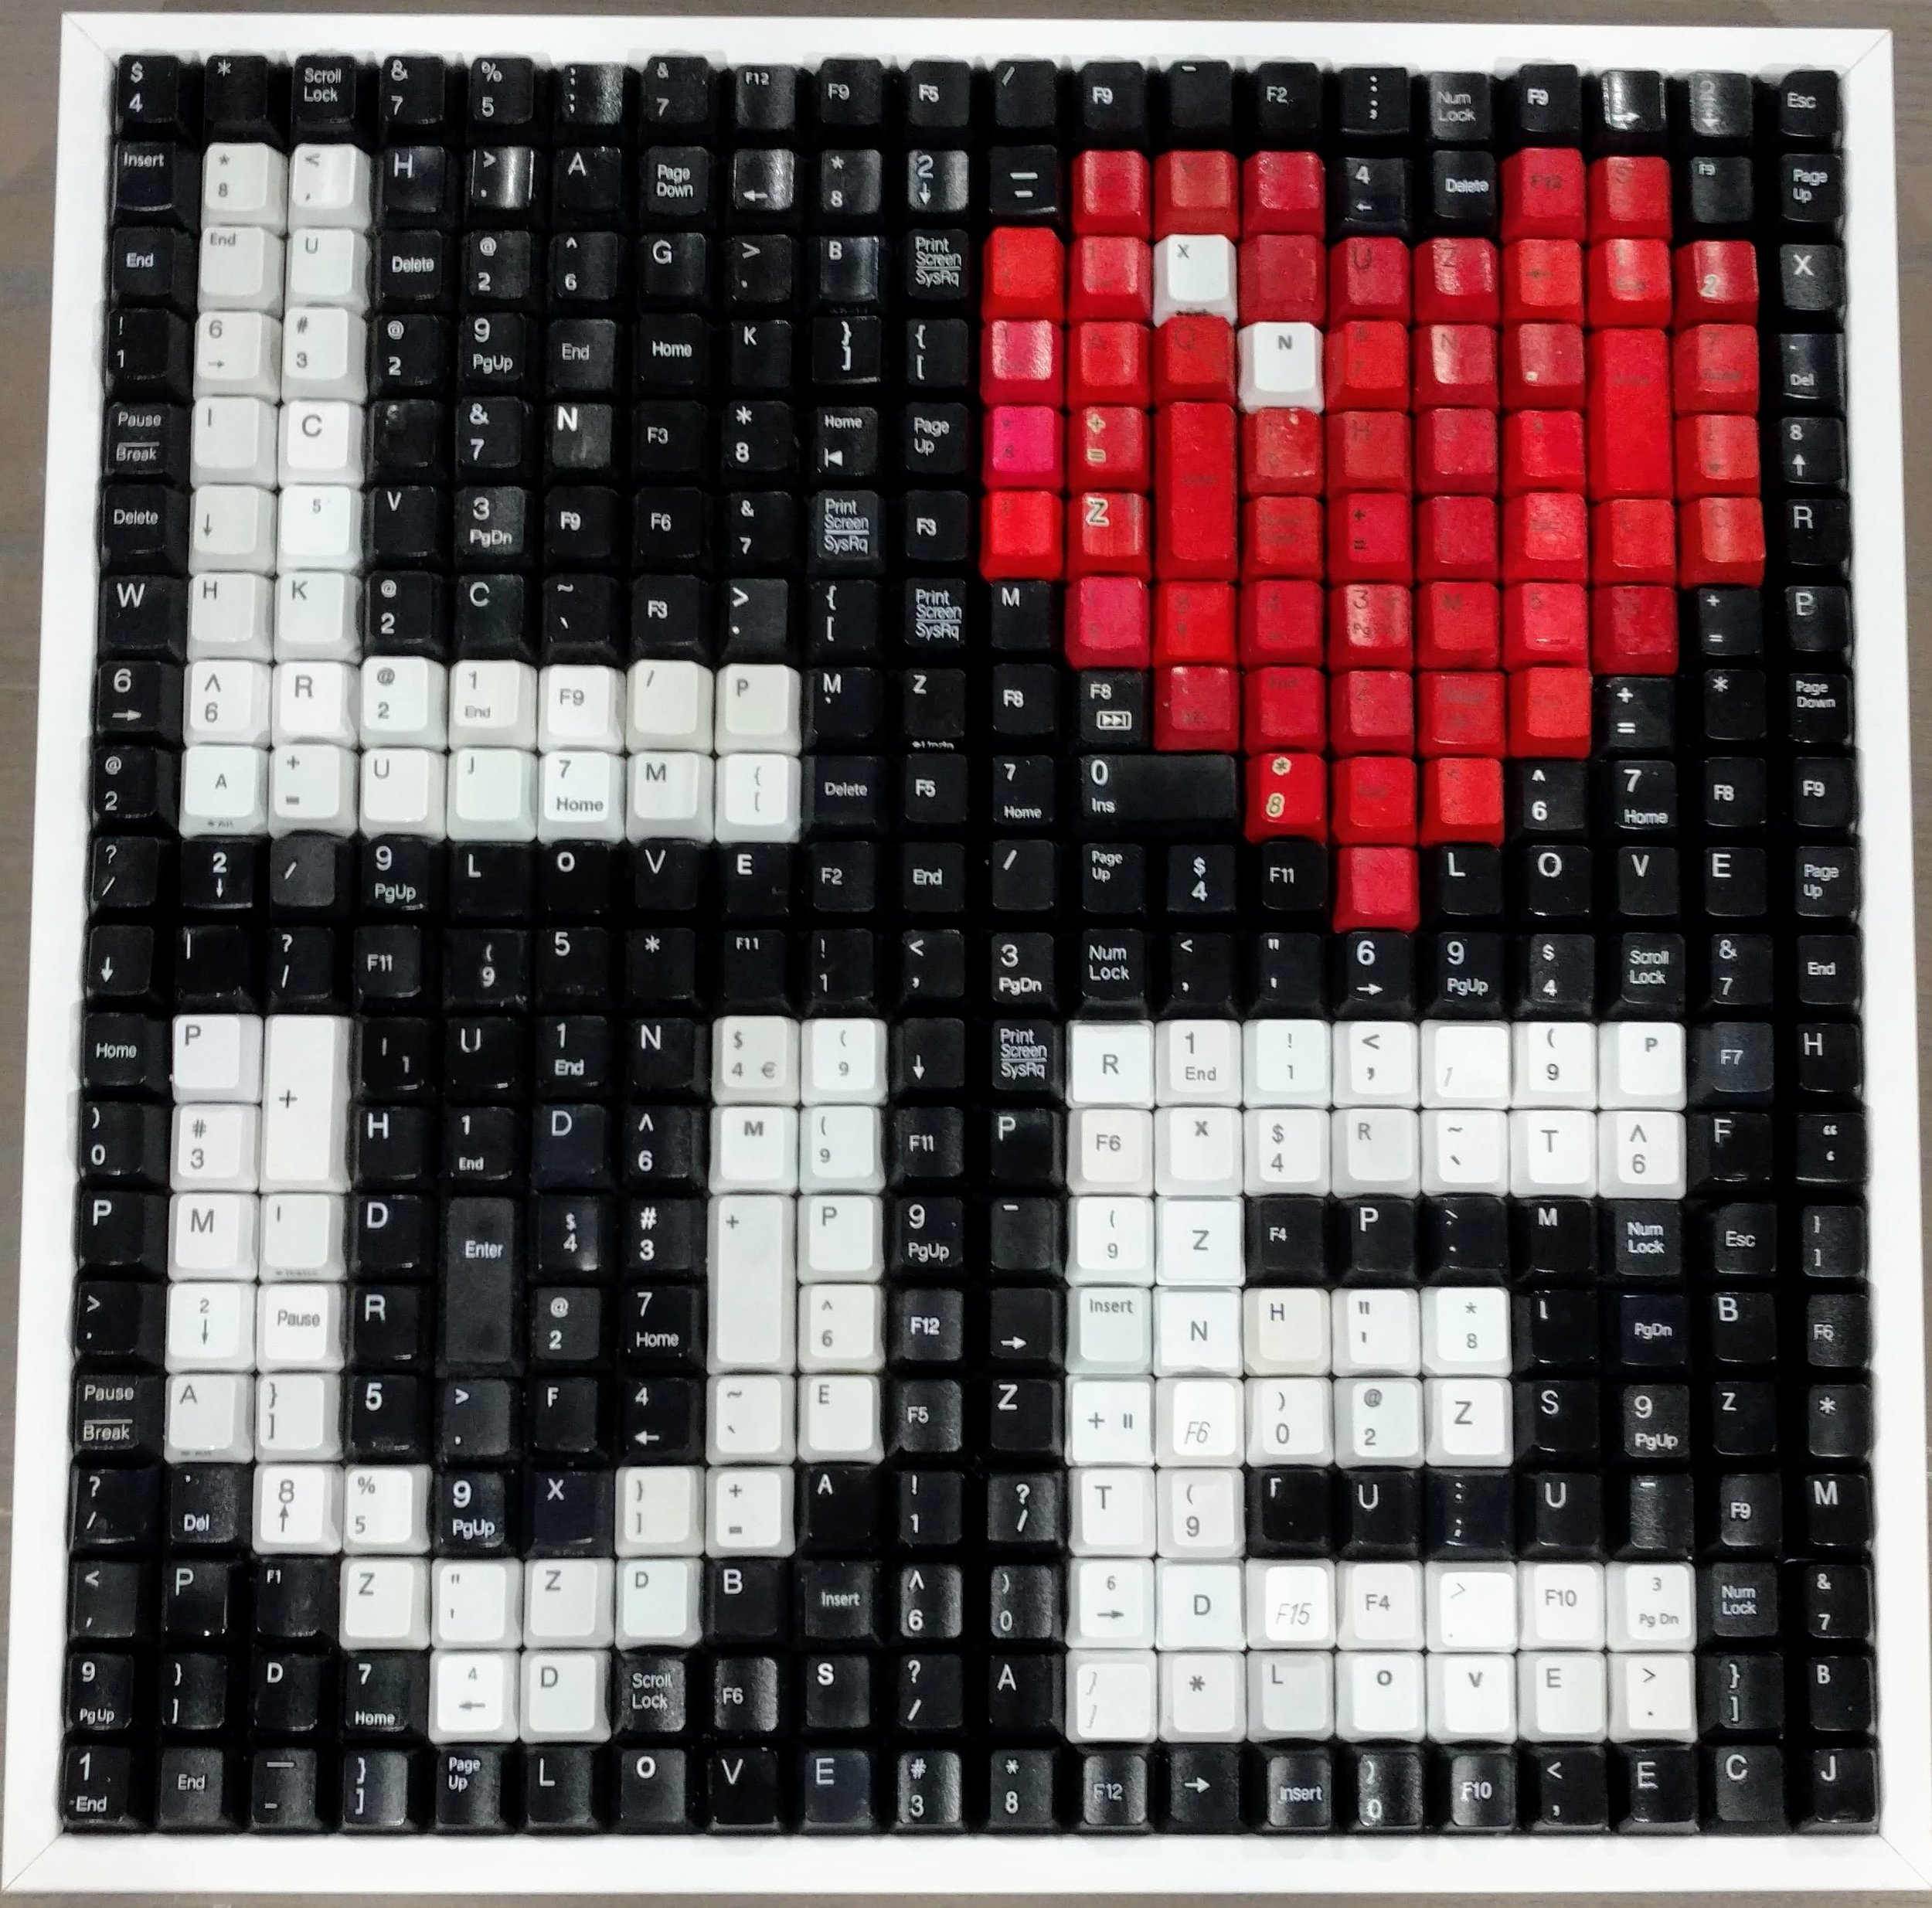 LOVE - BLACK BACKGROUND  | 15 X 15 in   ORIGINAL